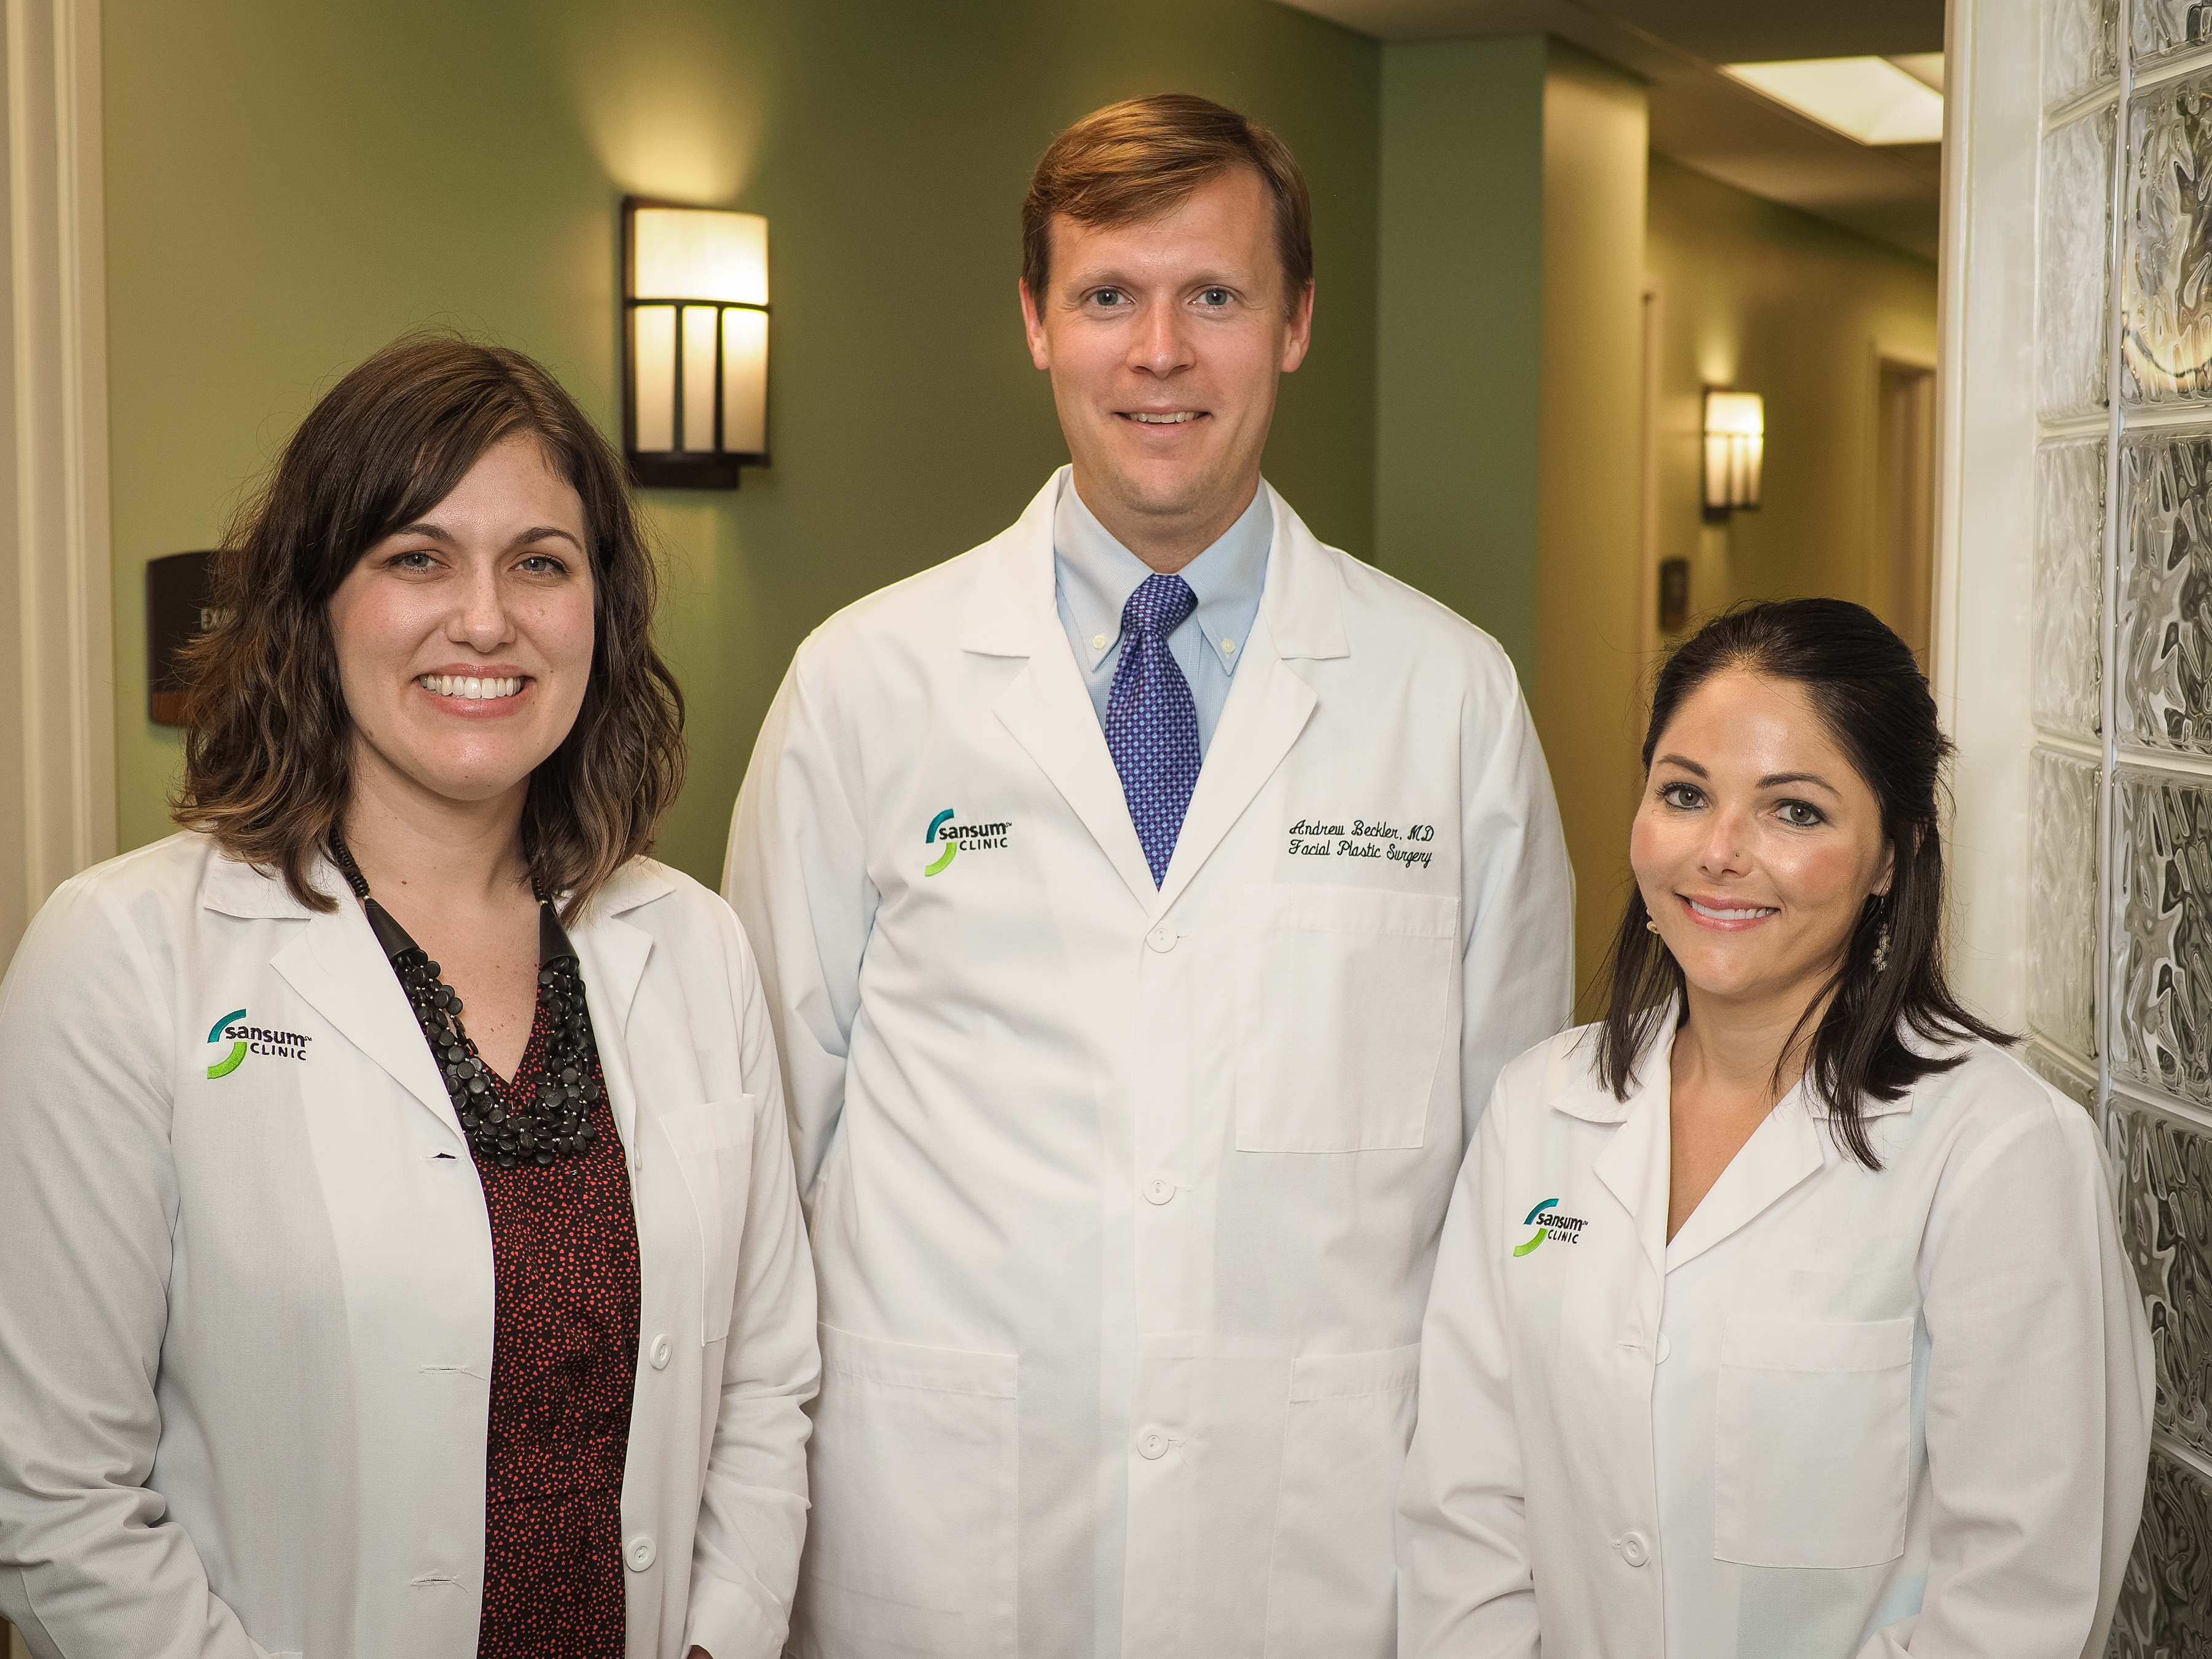 Dermatology Drs. Perrin, Barry and Beckler